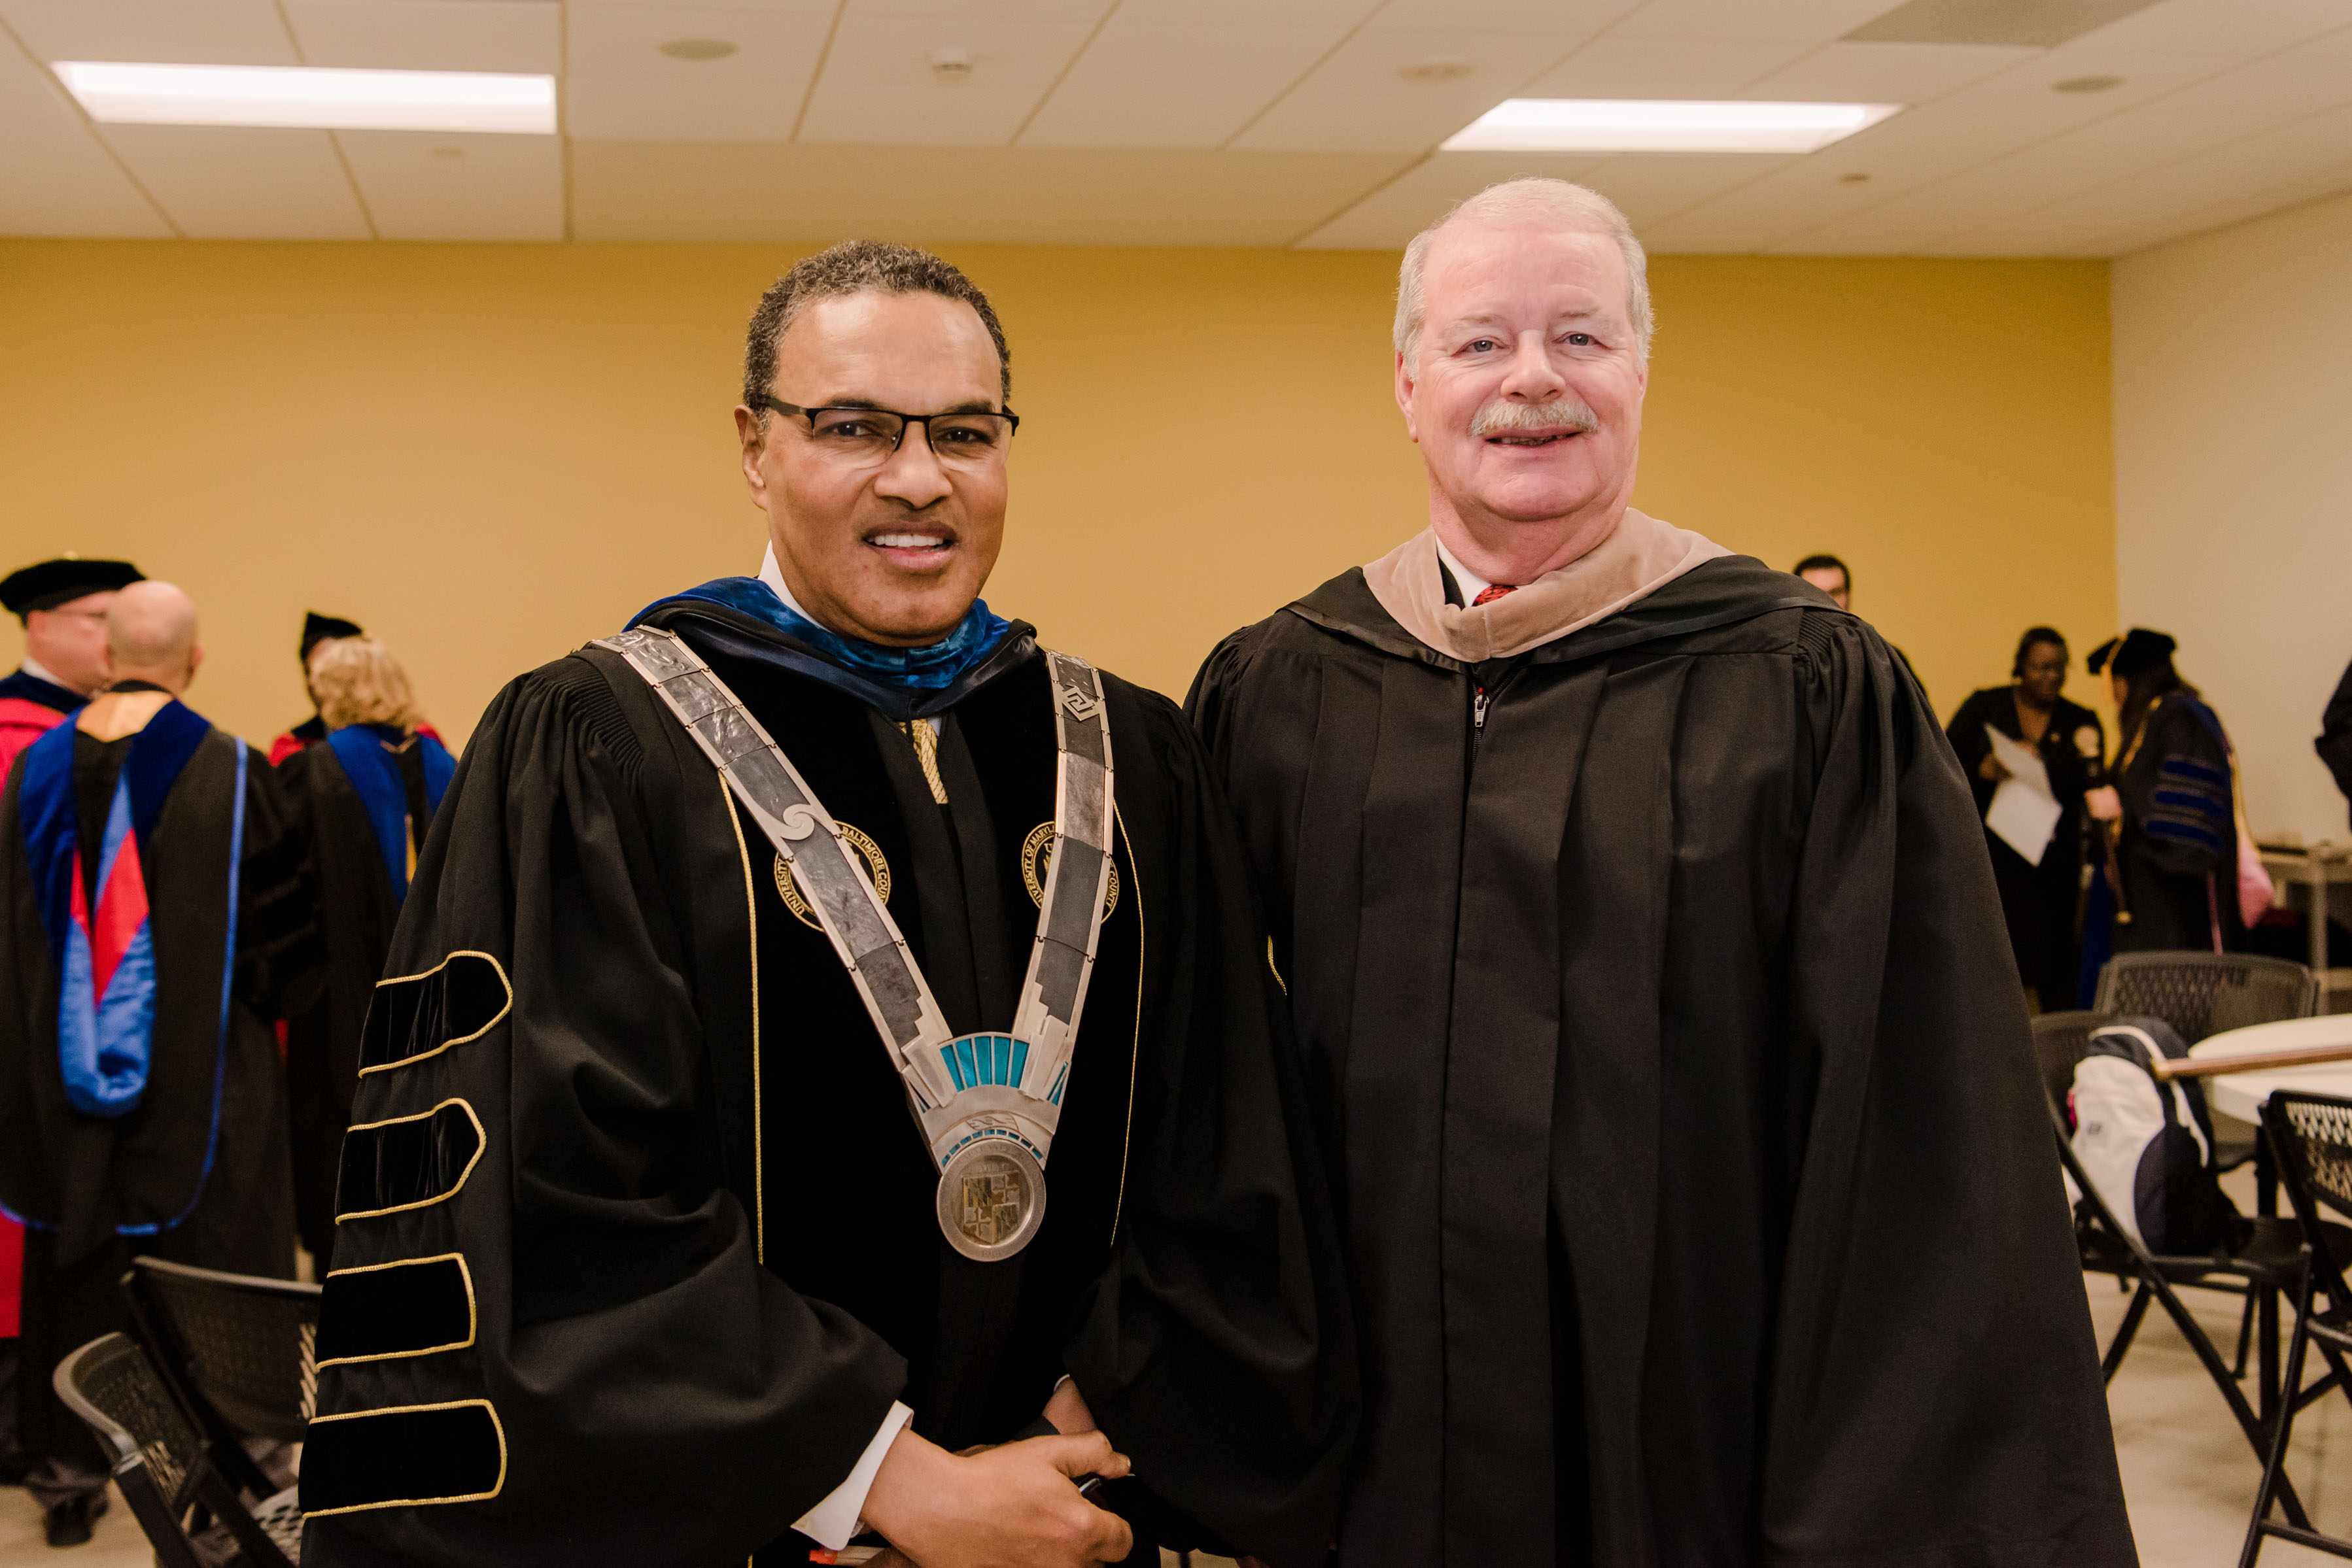 President Hrabowski poses with man in graduation robes